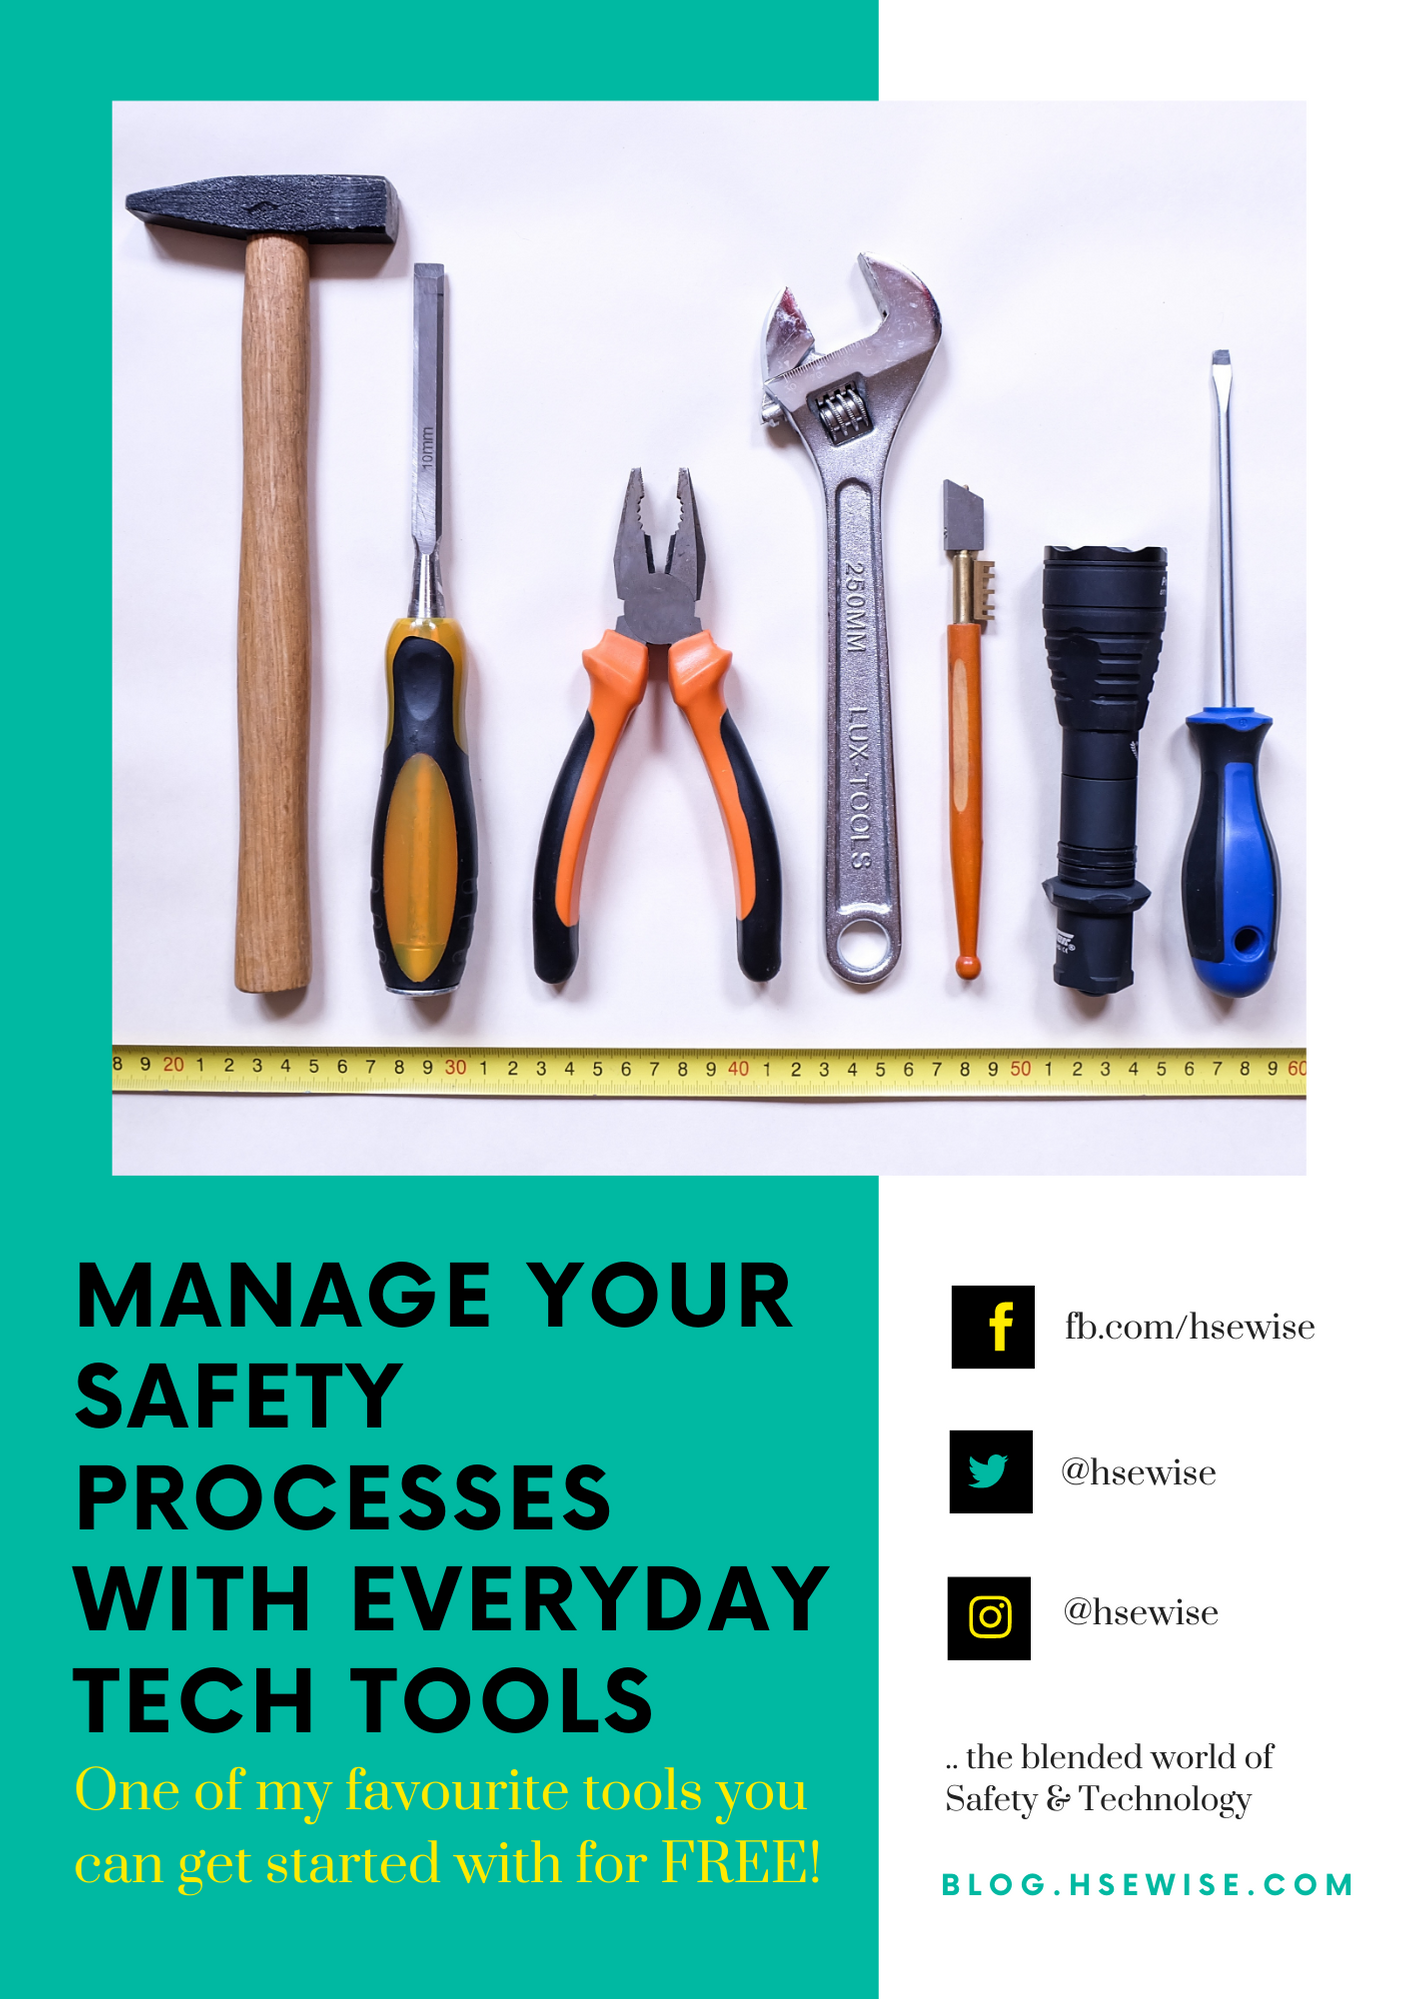 Hsewise safety technology